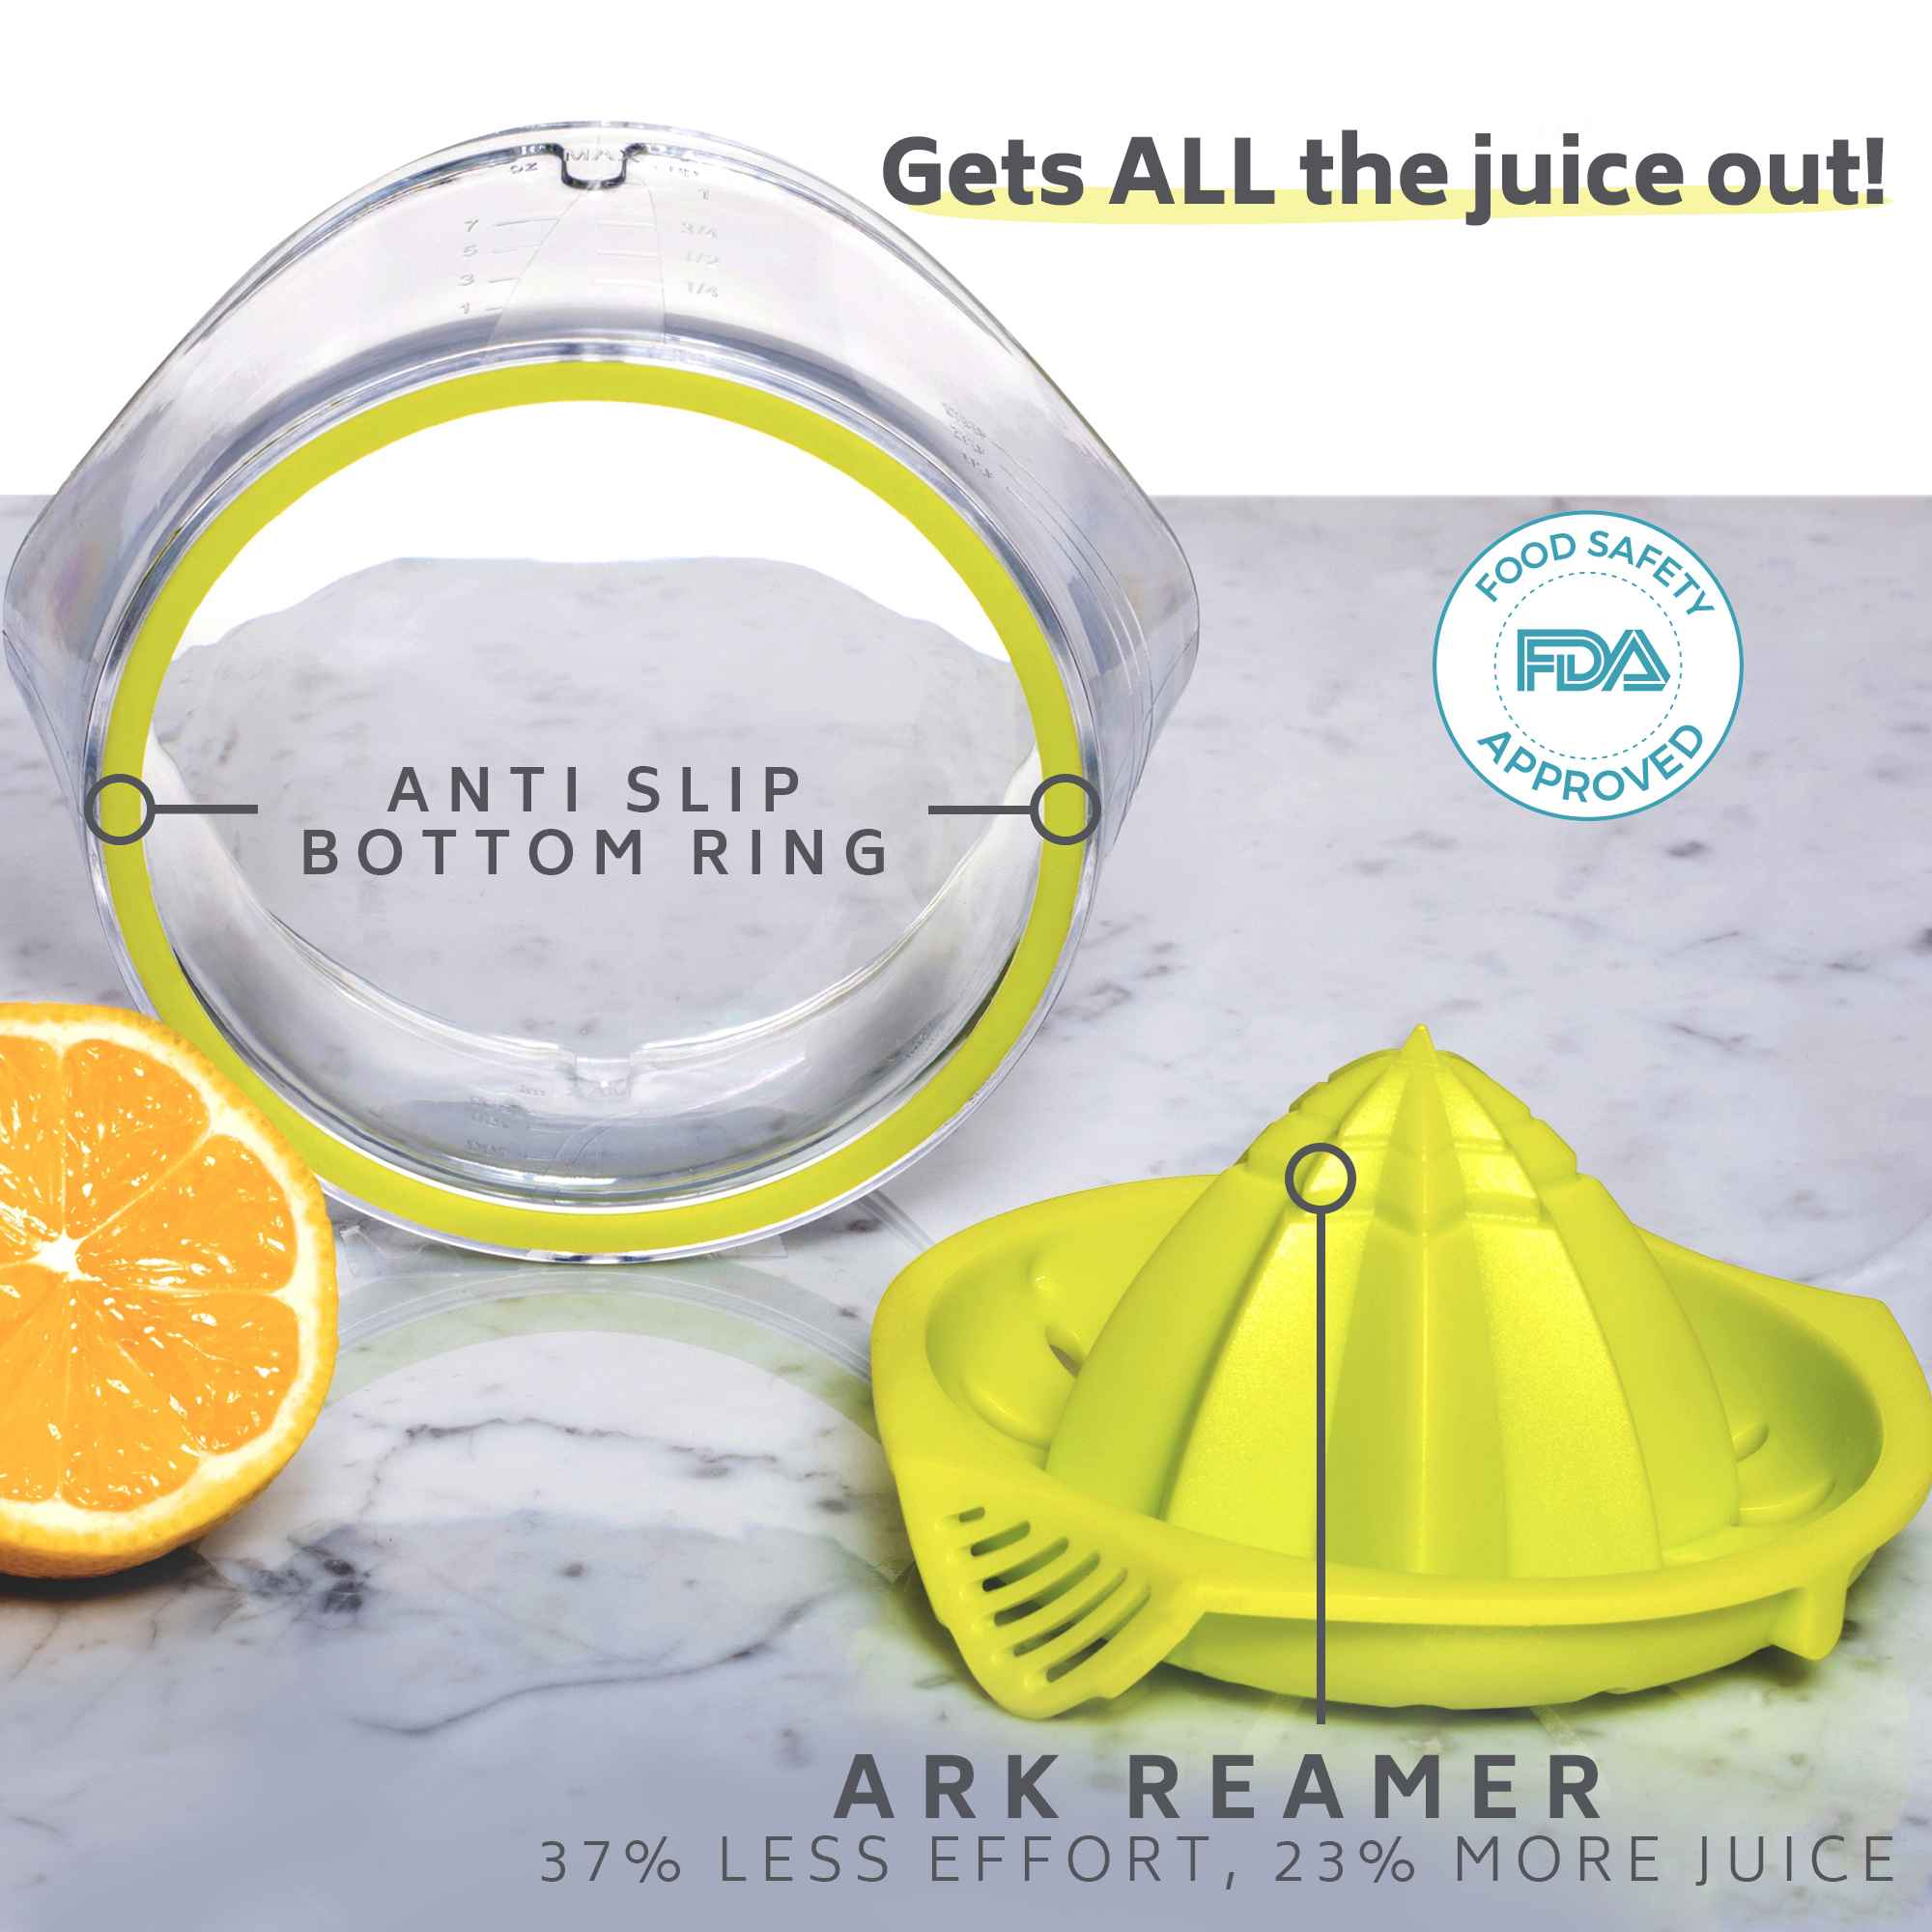 Gets all the juice out, ARK reamer juicer, lemon reamer, citrus reamer, more juice less effort, SAFE FDA approved citrus lemon juicer